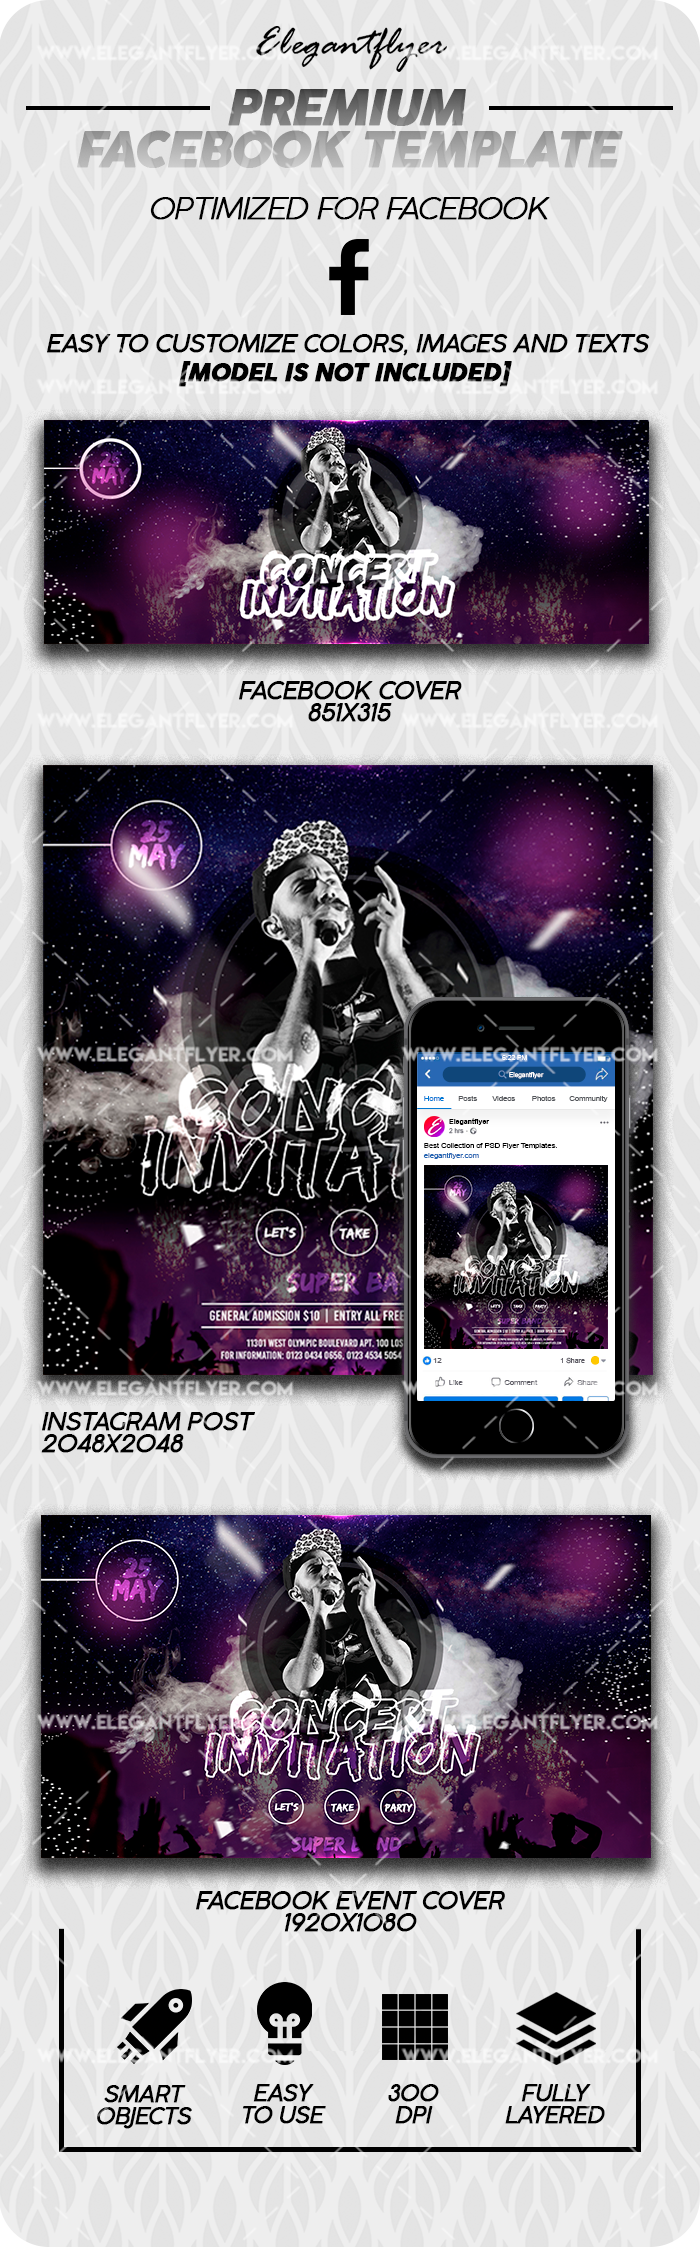 Concert Invitation – Facebook Cover Template in PSD + Post + Event cover